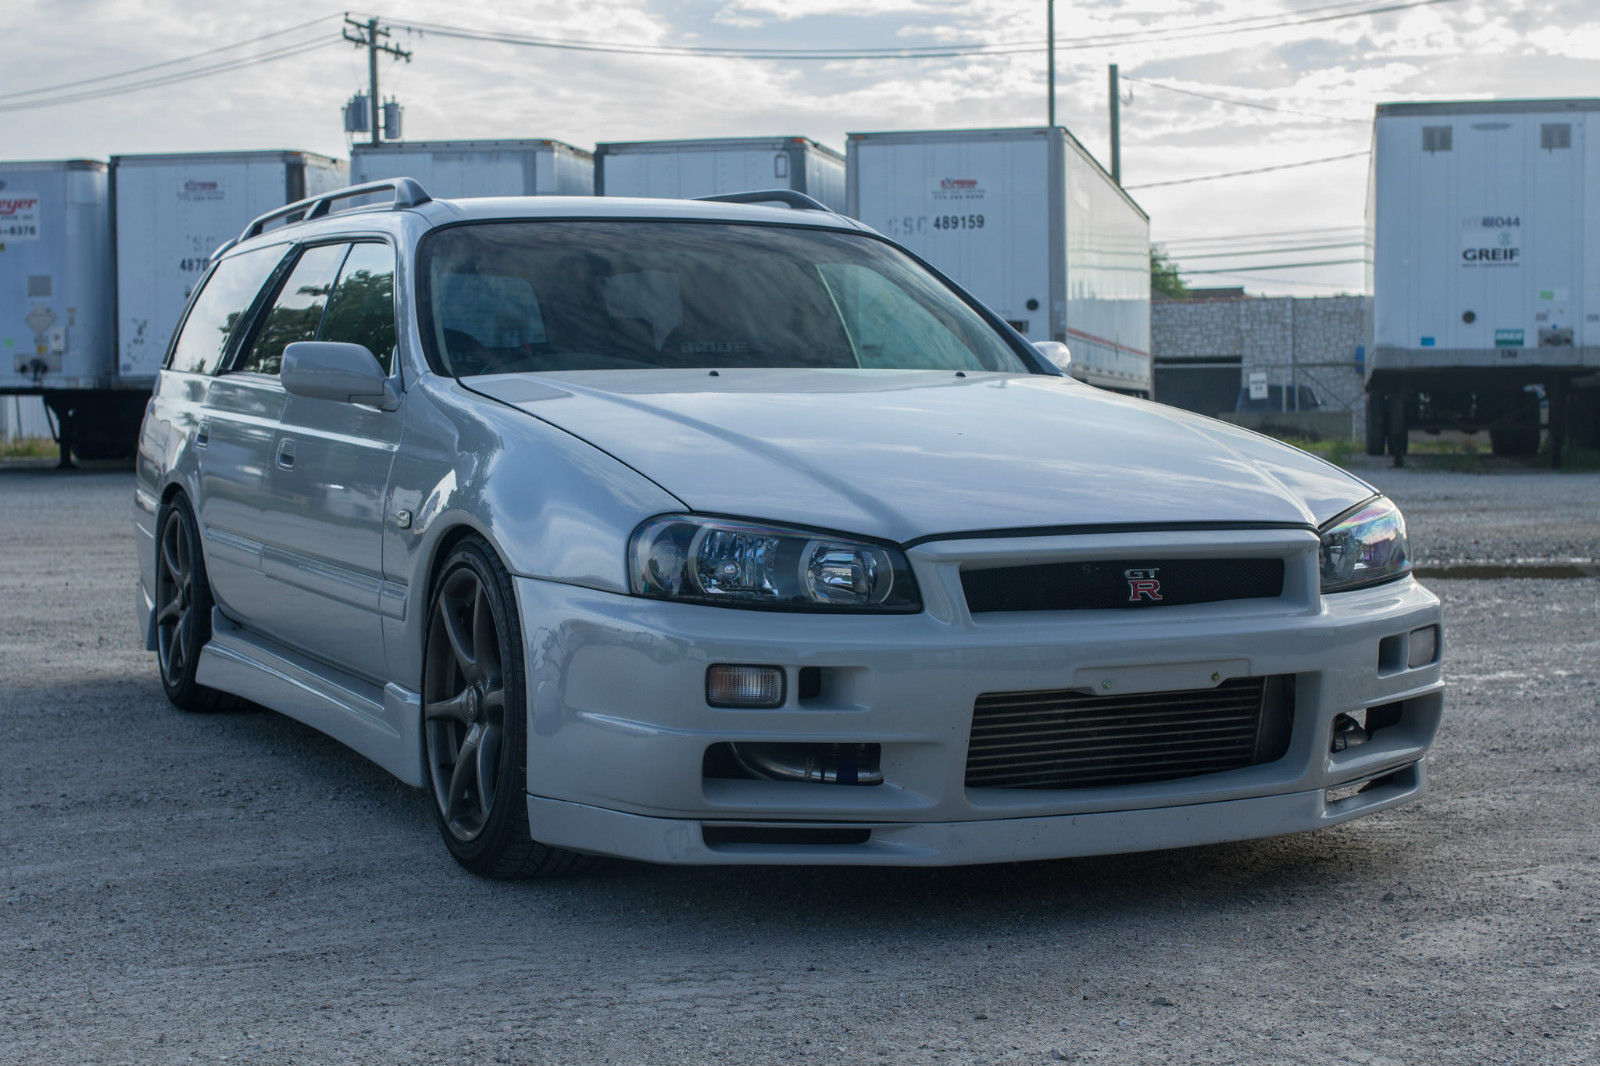 Fake R34 Nisan GT-R Wagon for Sale Is Based on JDM Stagea